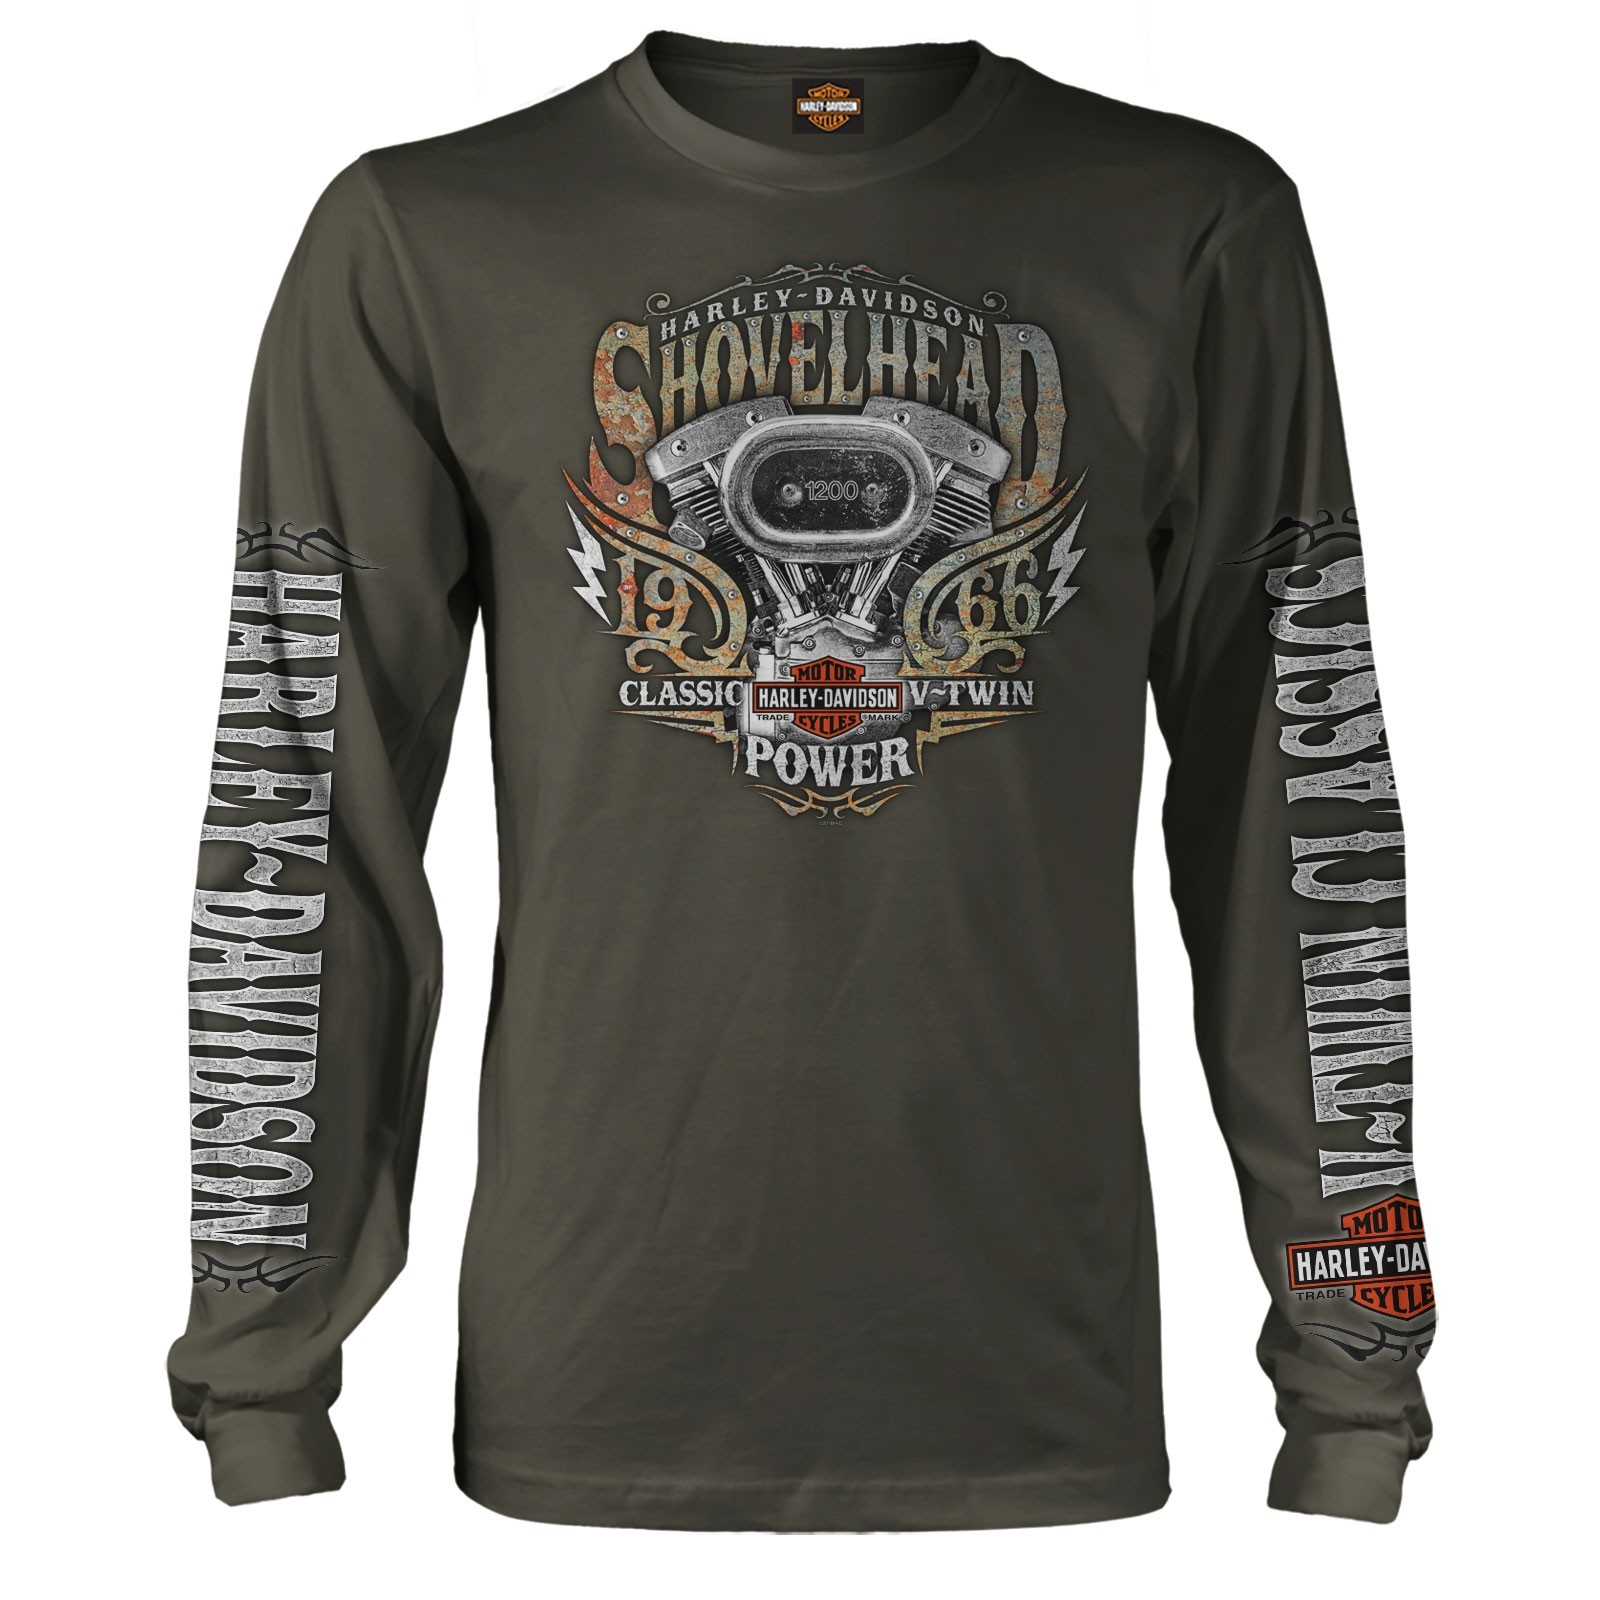 07658f4f0 Harley-Davidson Military Men's Long-Sleeve Graphic Tee - Aviano AB |  Shovelhead